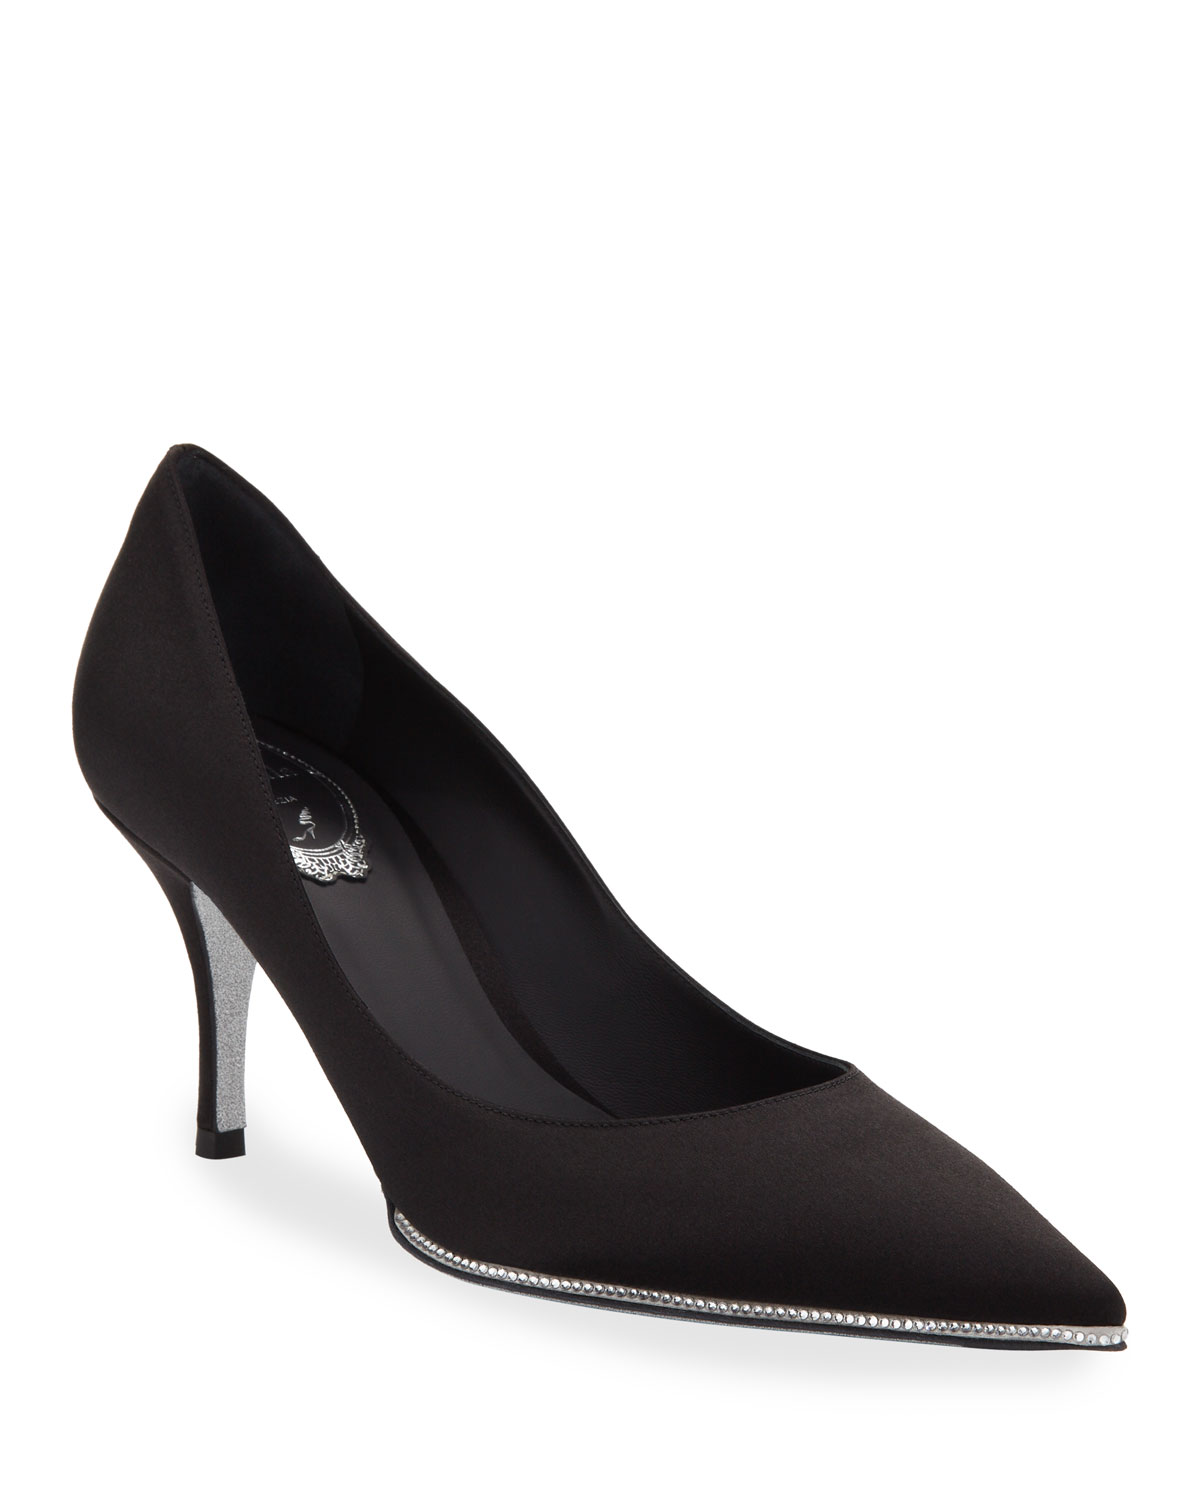 Satin Pumps with Crystal Trim